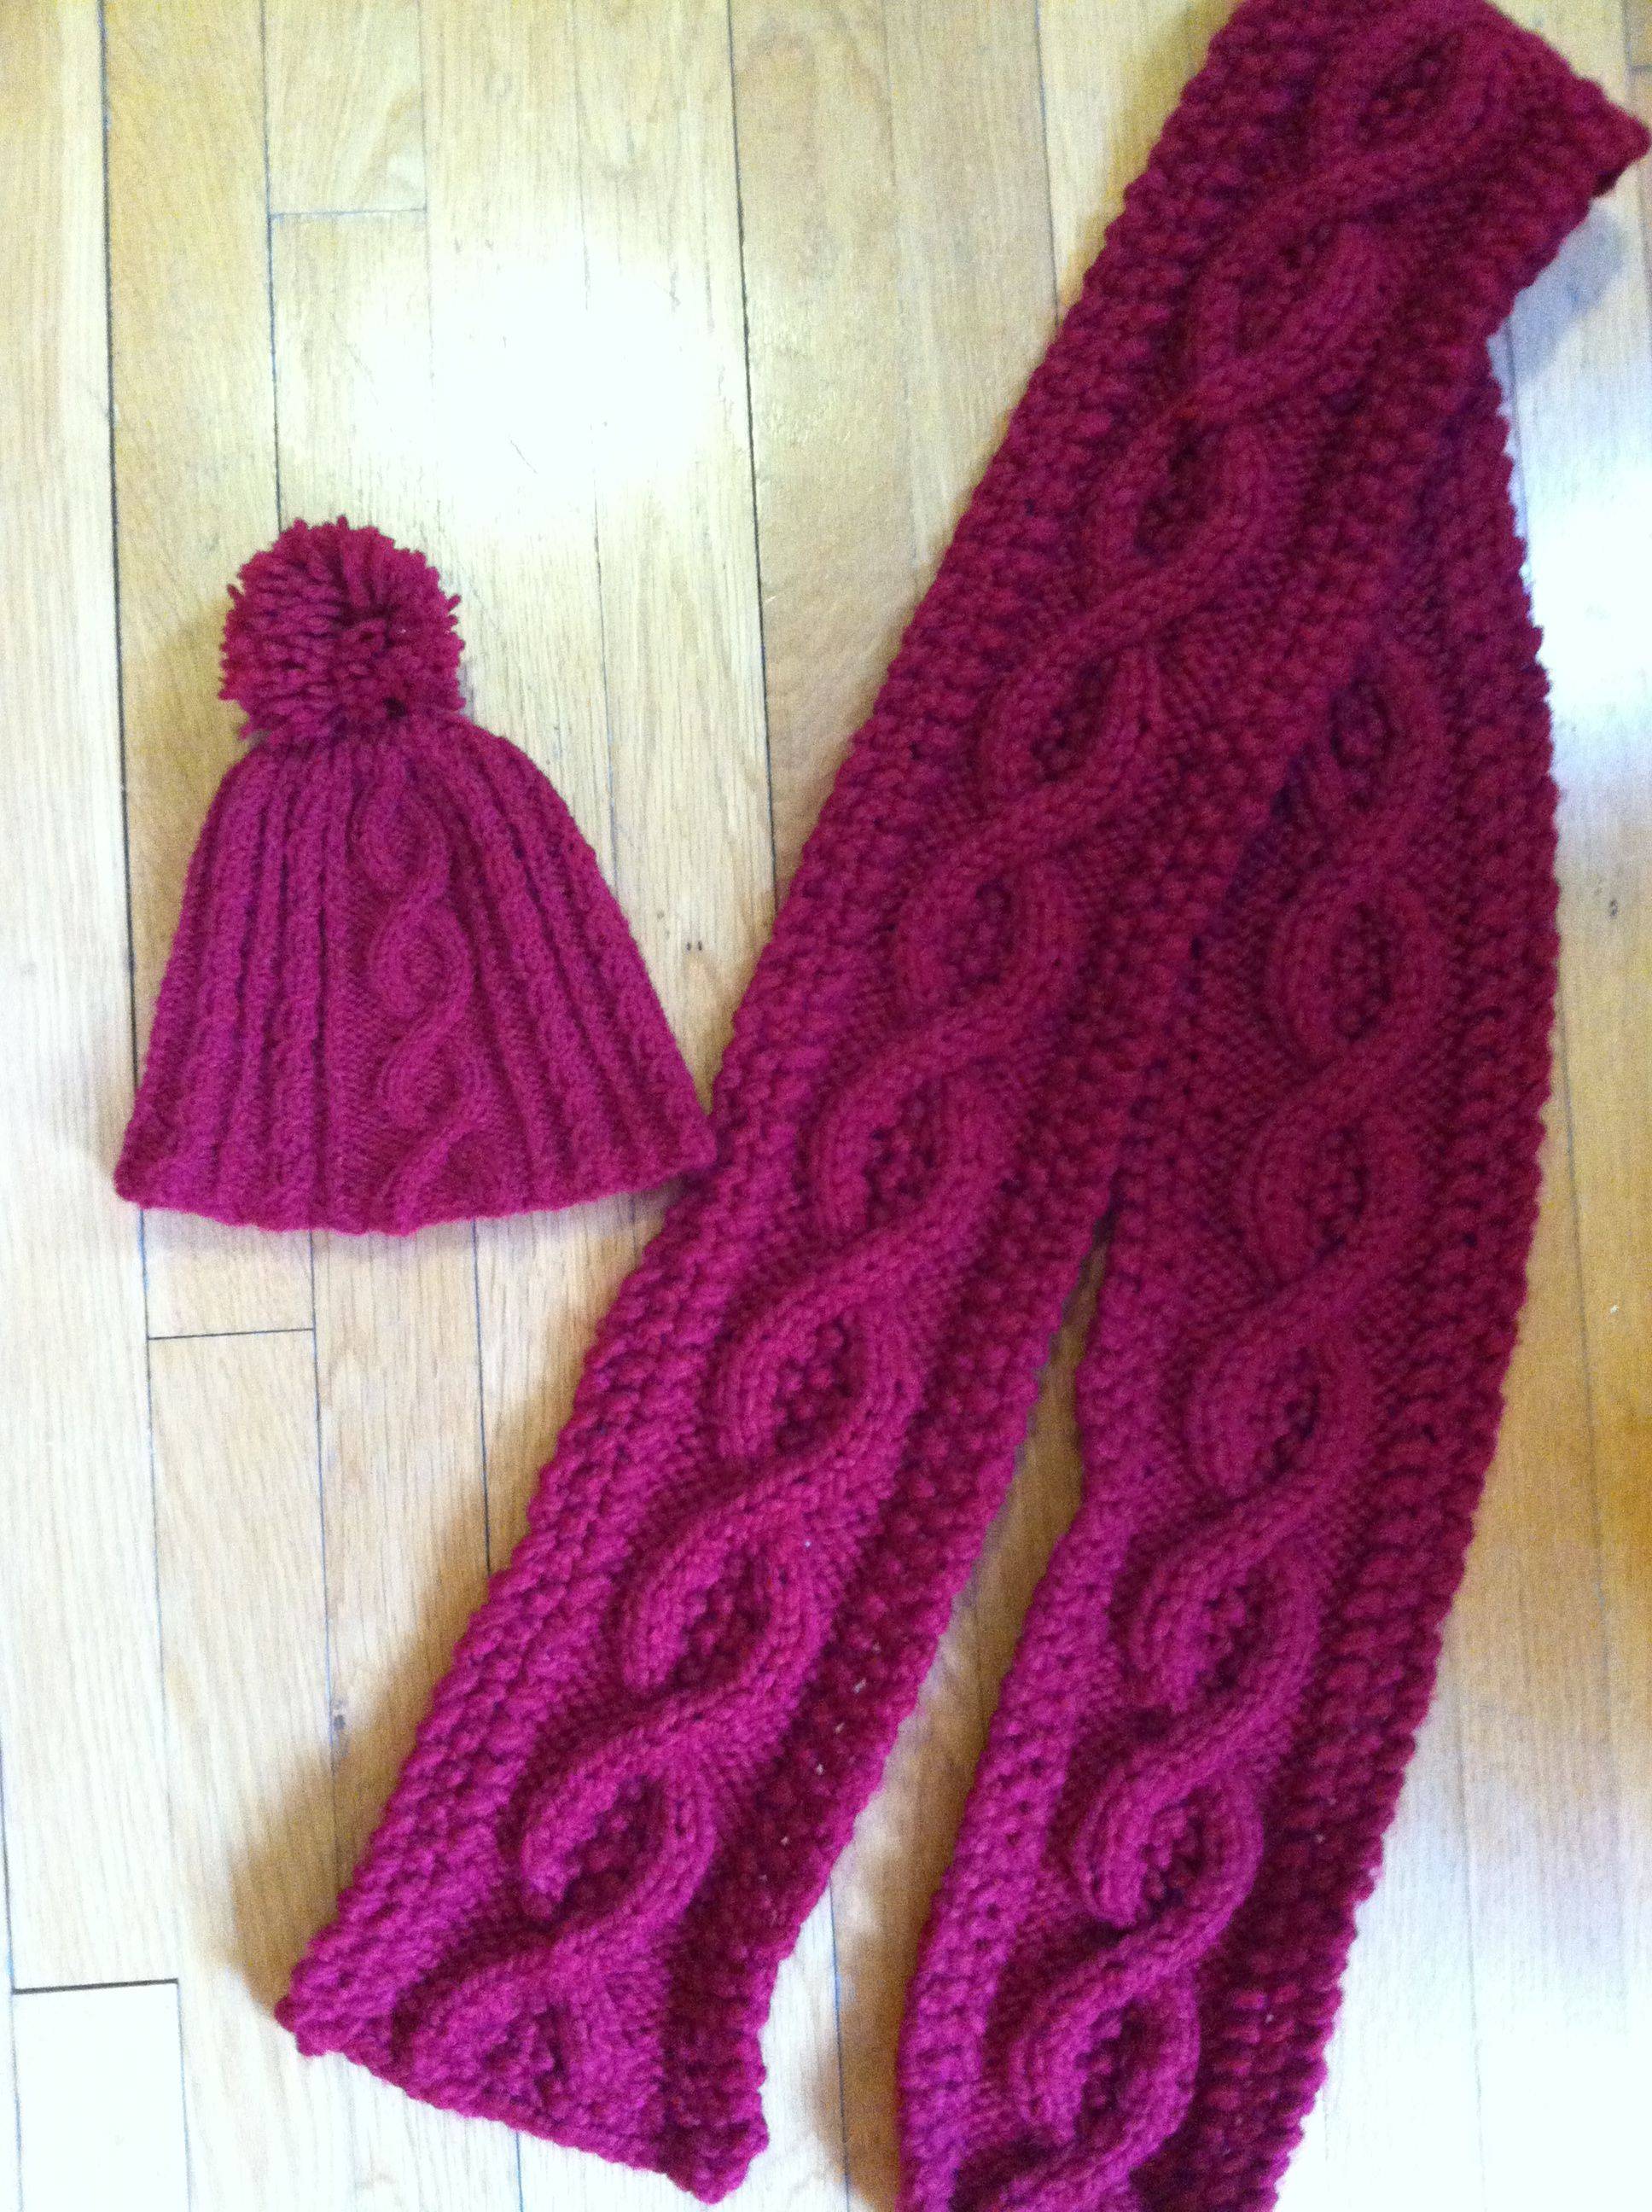 Knitted Cable Hat and Scarf, cranberry, oxblood, bulky